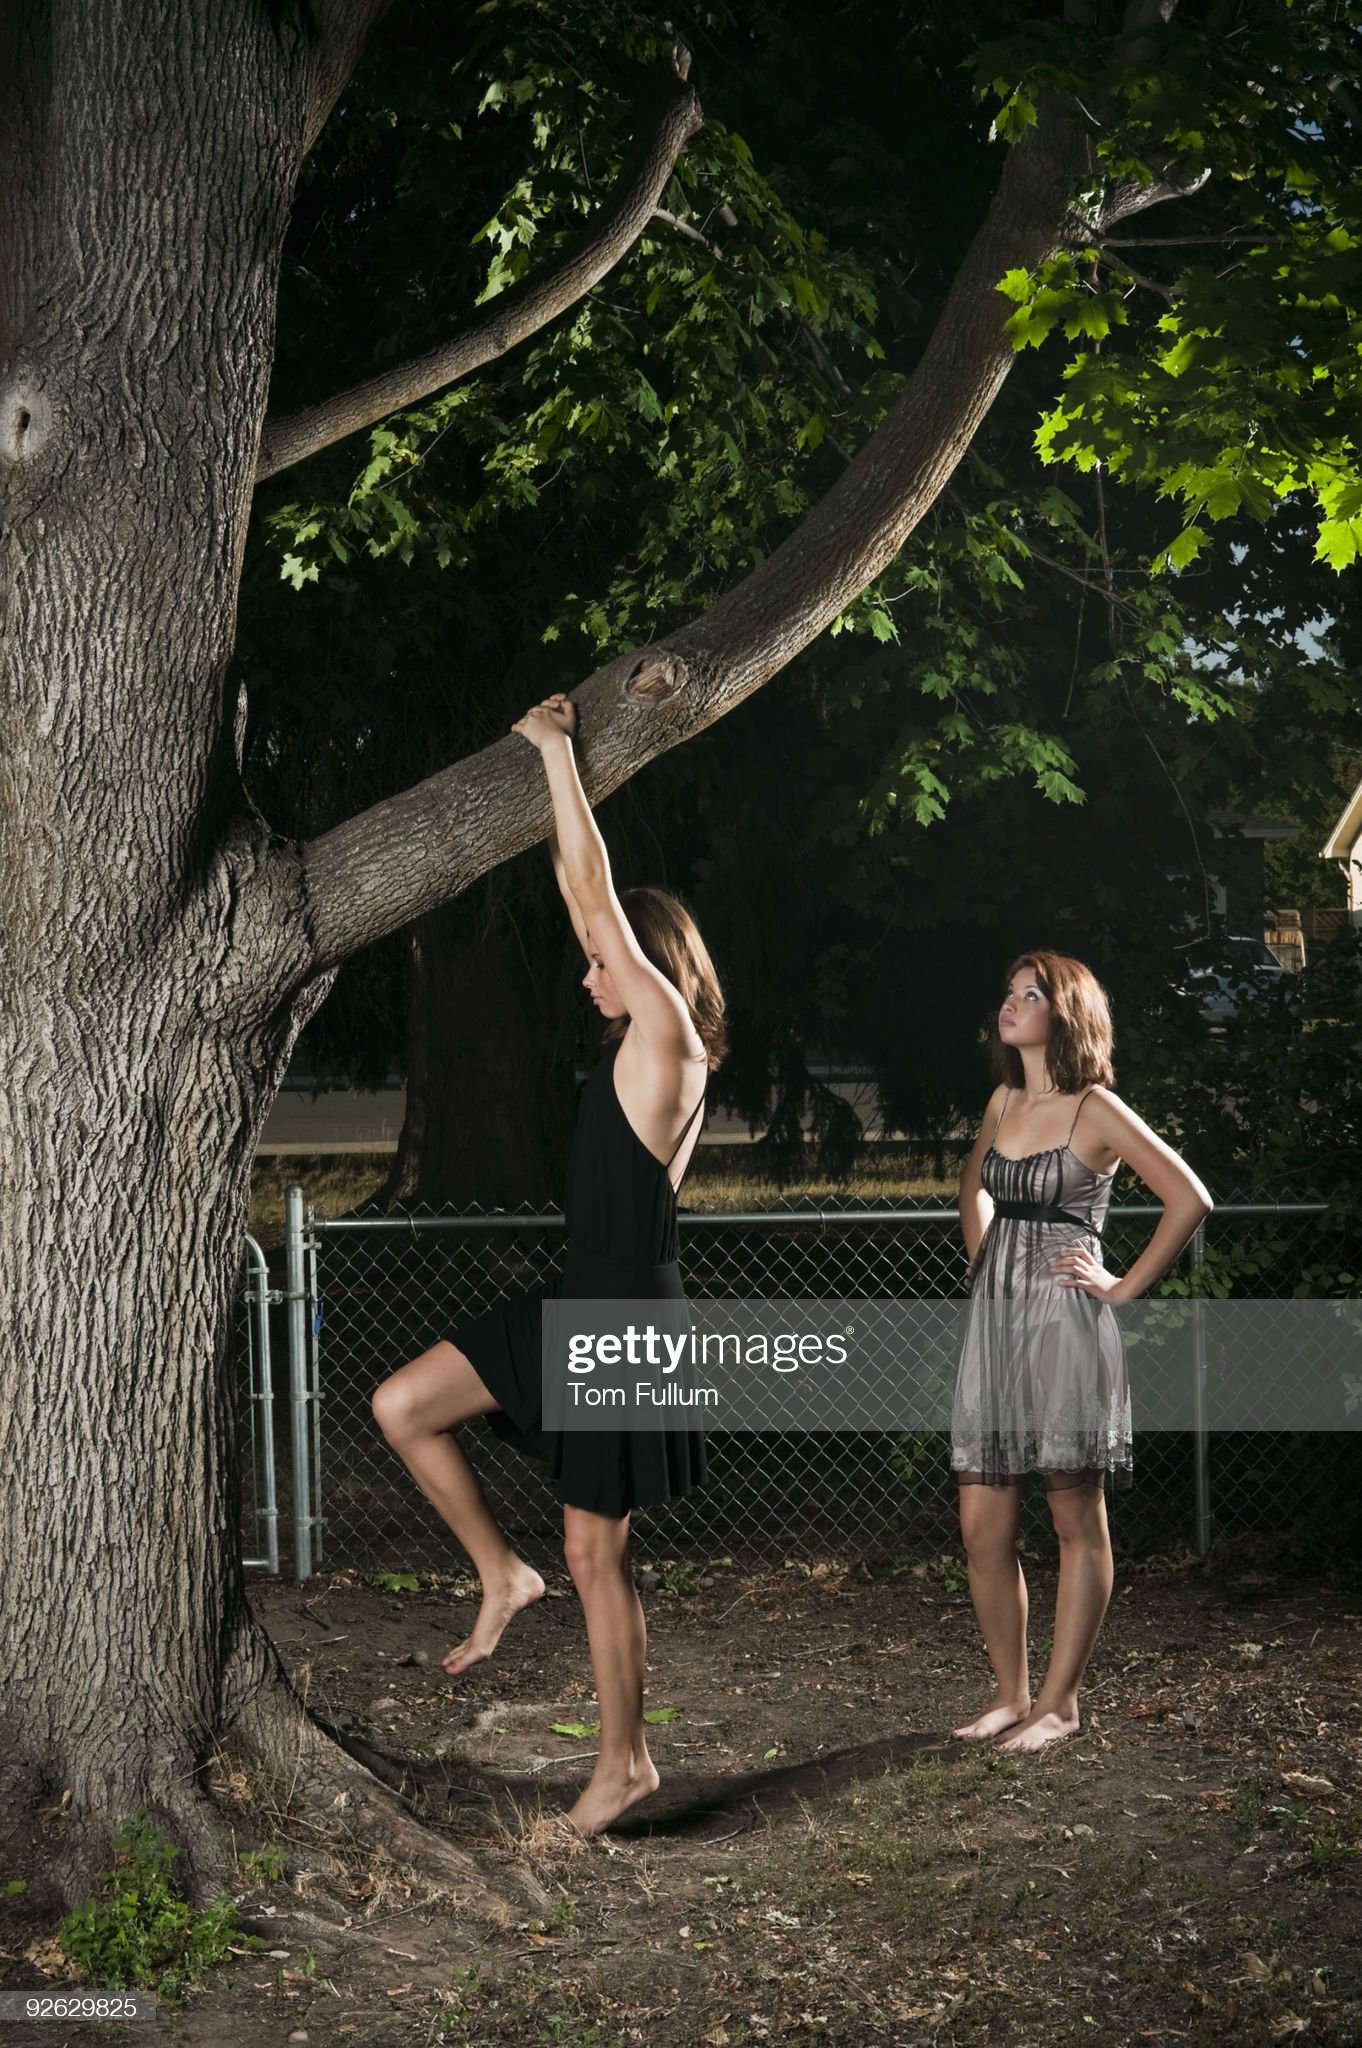 https://media.gettyimages.com/photos/two-young-woman-climbing-tree-picture-id92629825?s=2048x2048